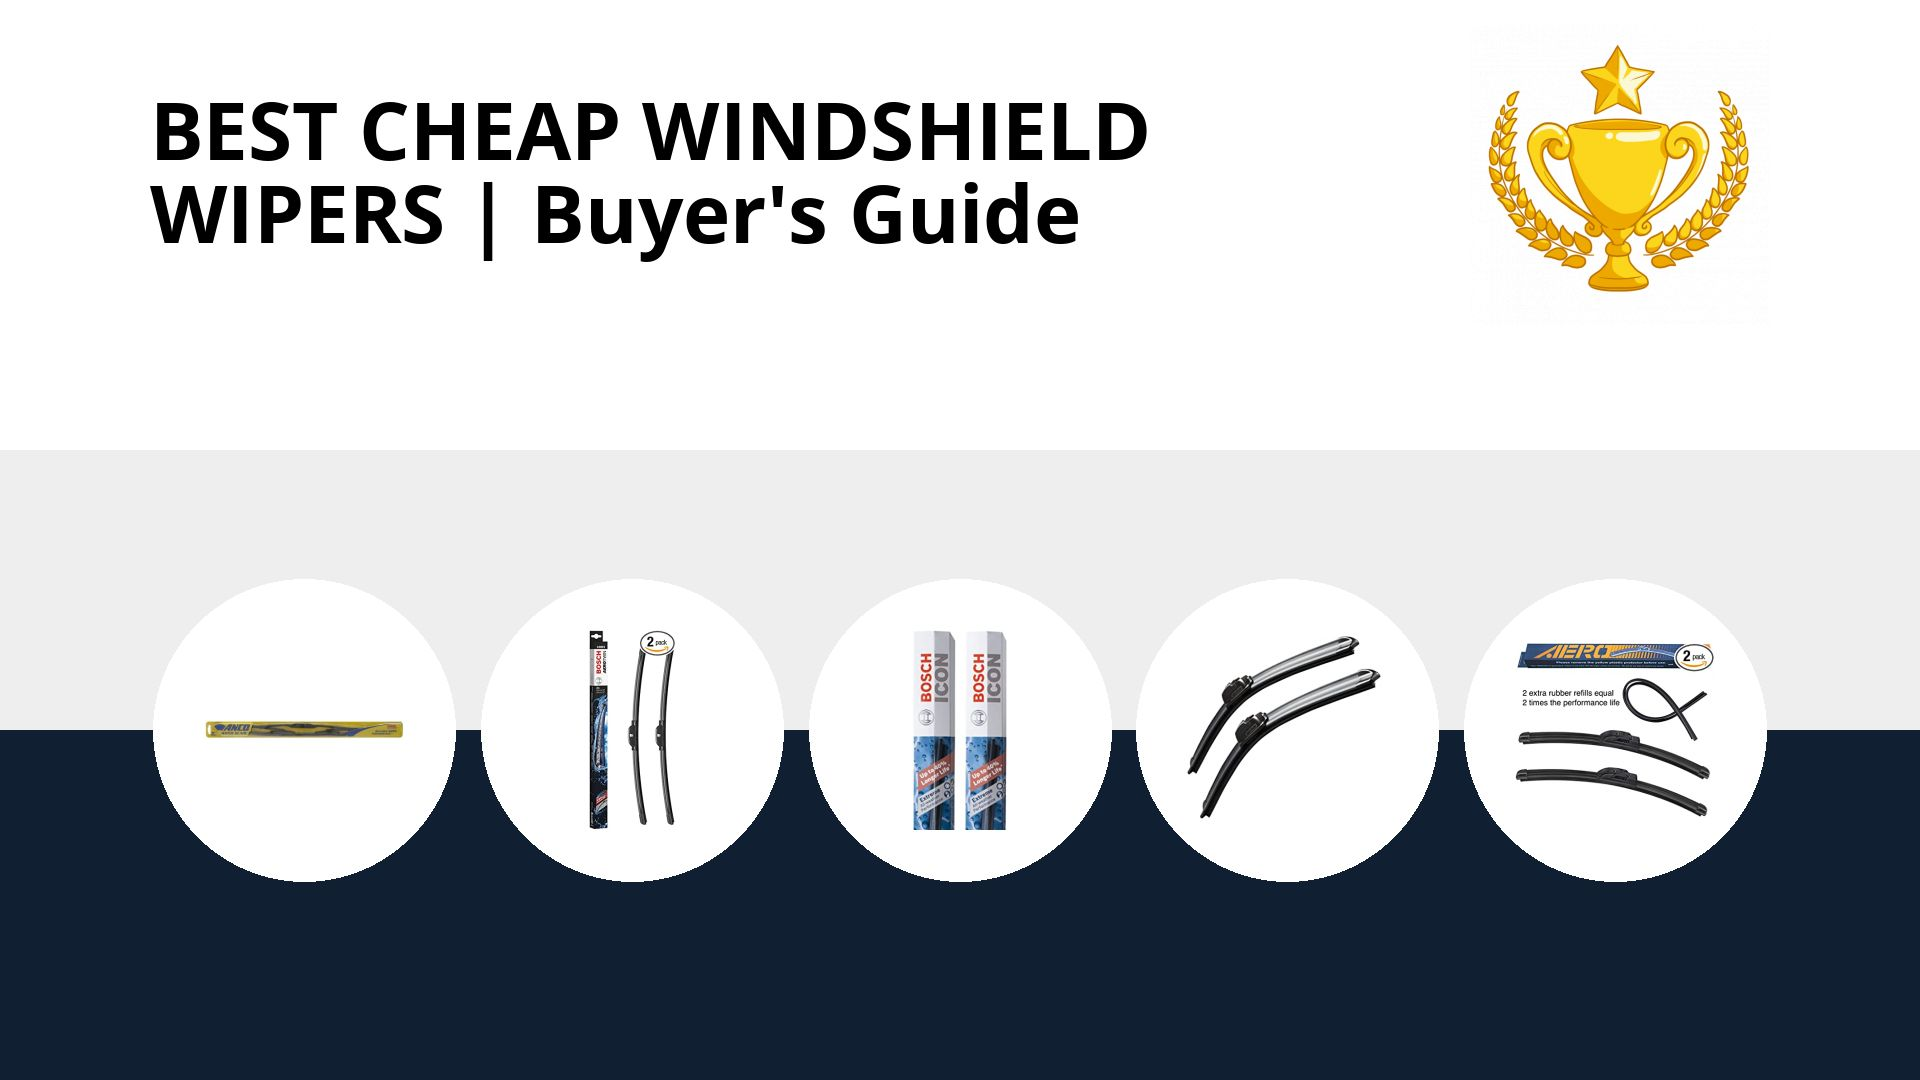 Best Cheap Windshield Wipers: image